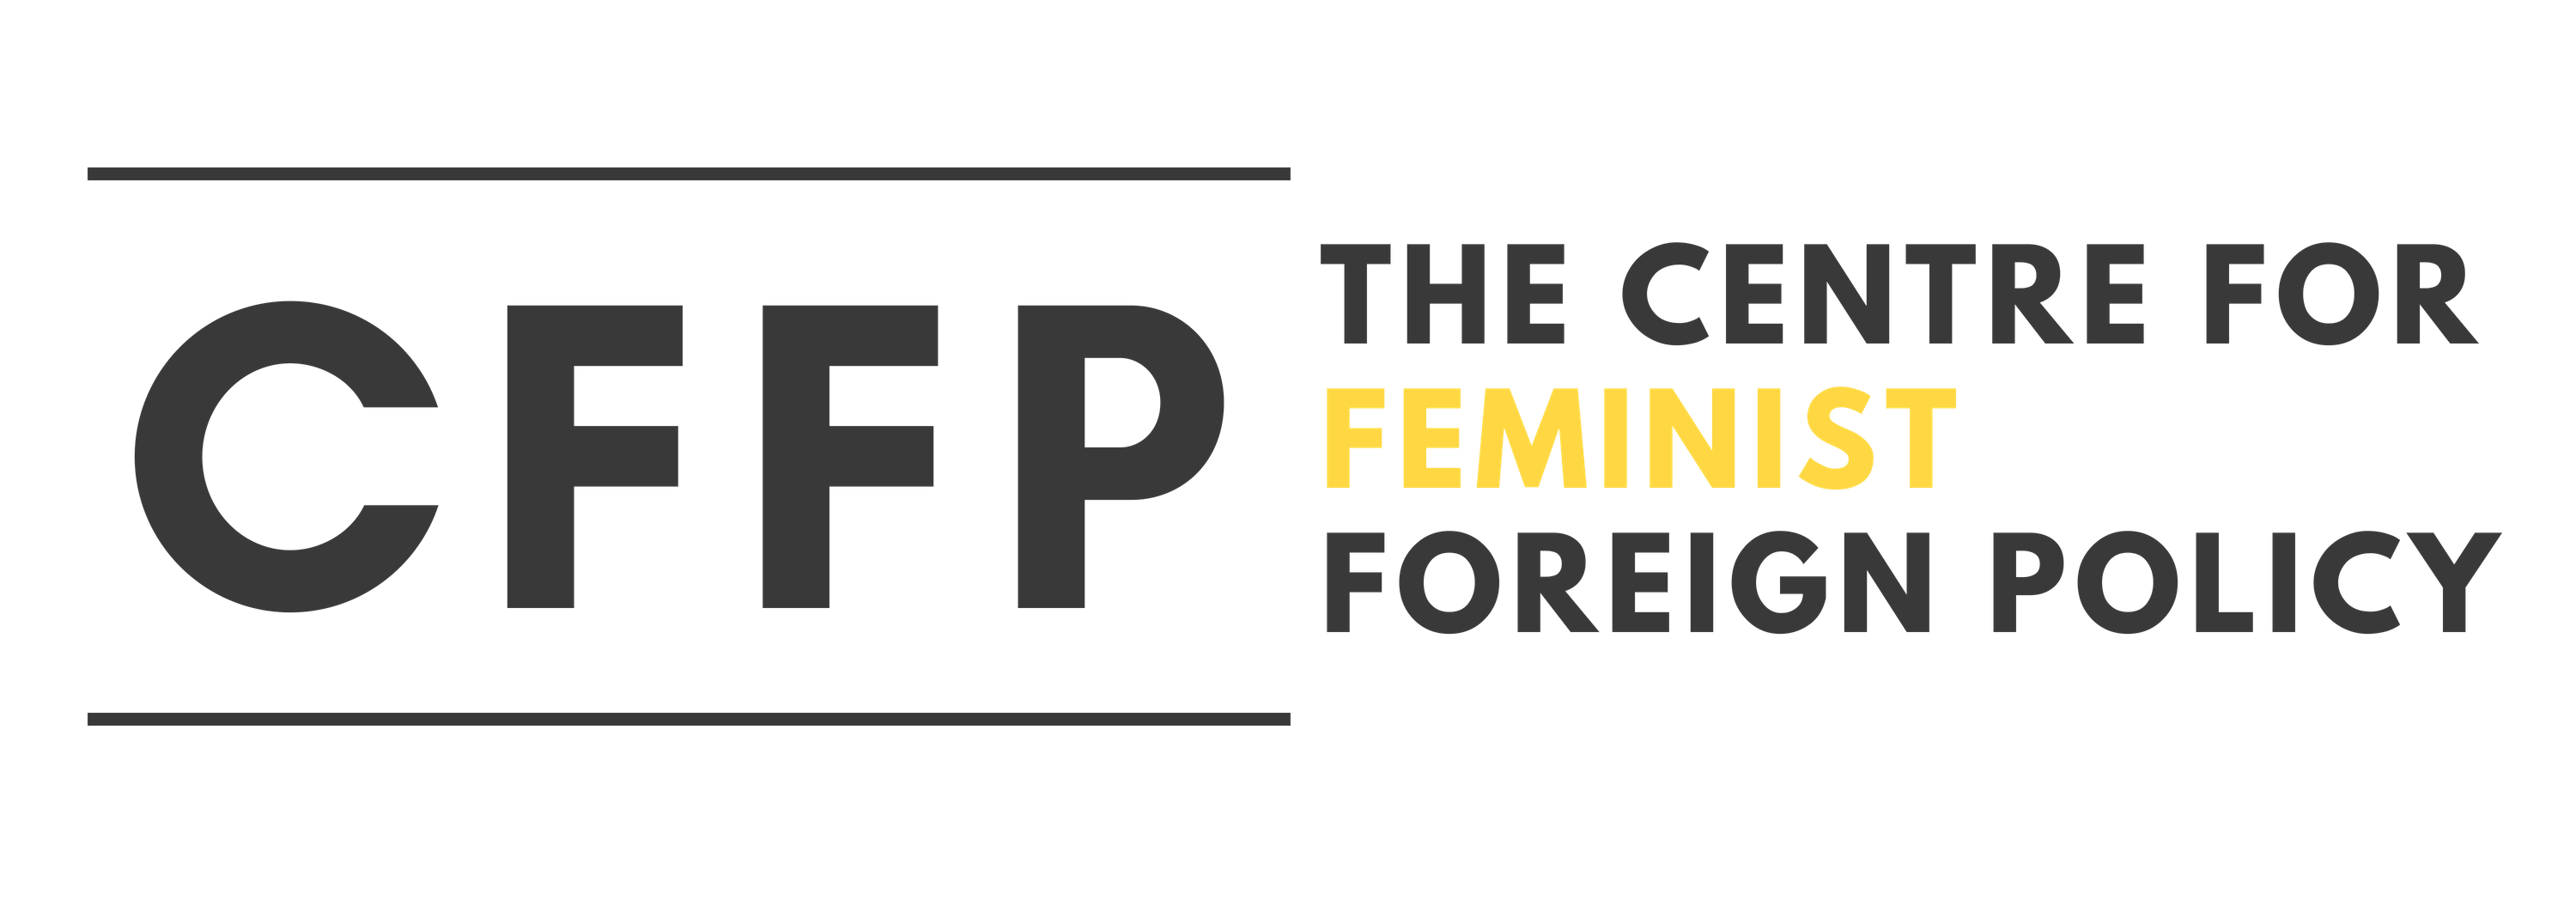 Centre for Feminist Foreign Policy